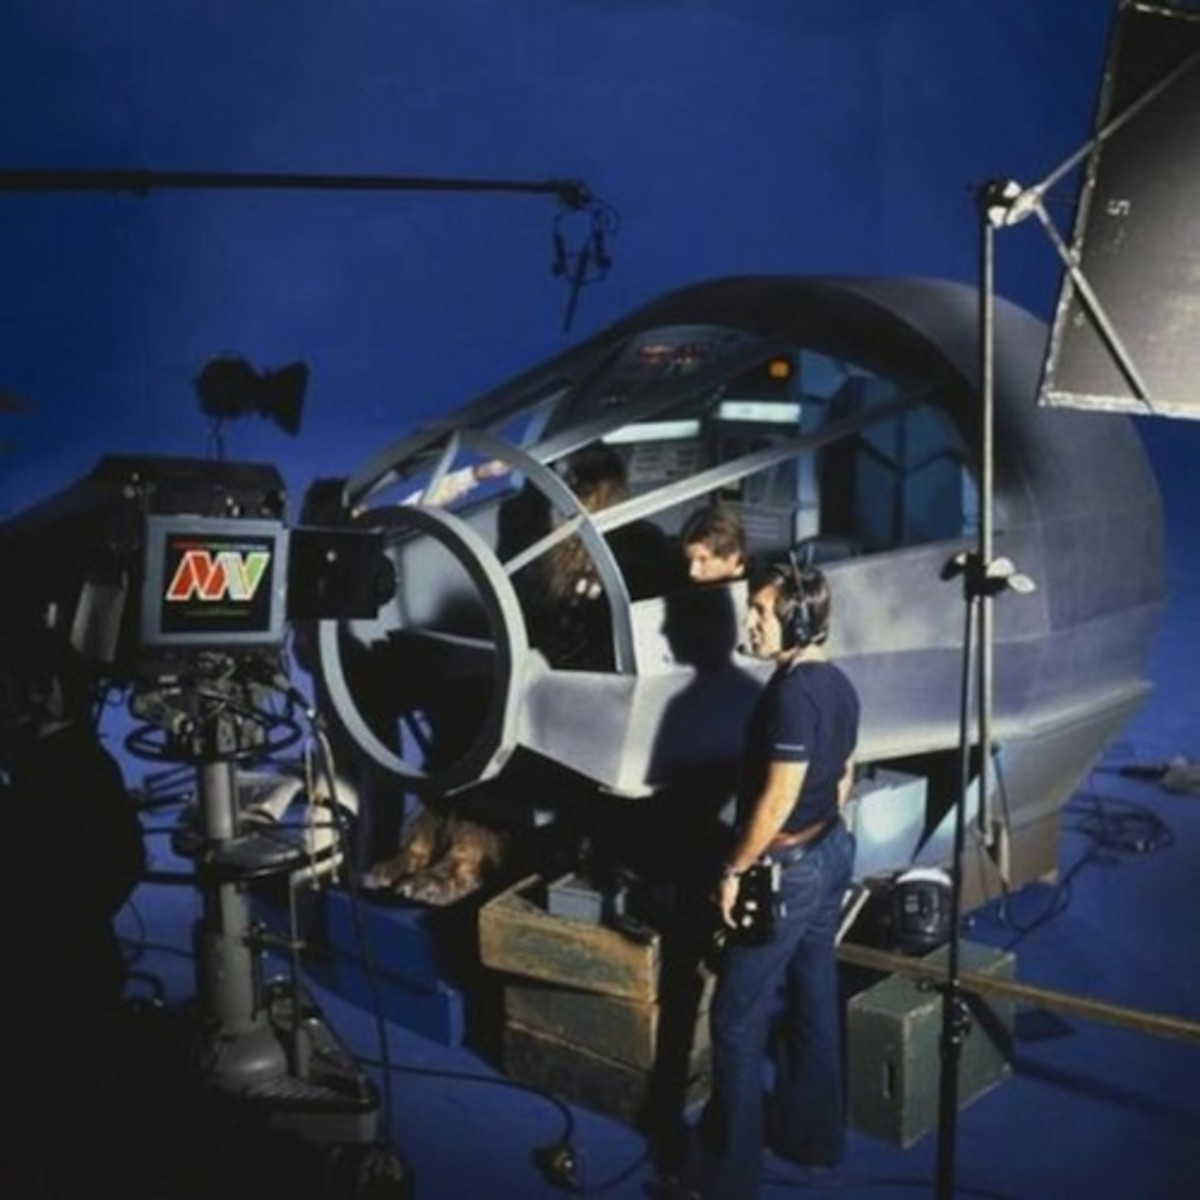 Filming star wars inside